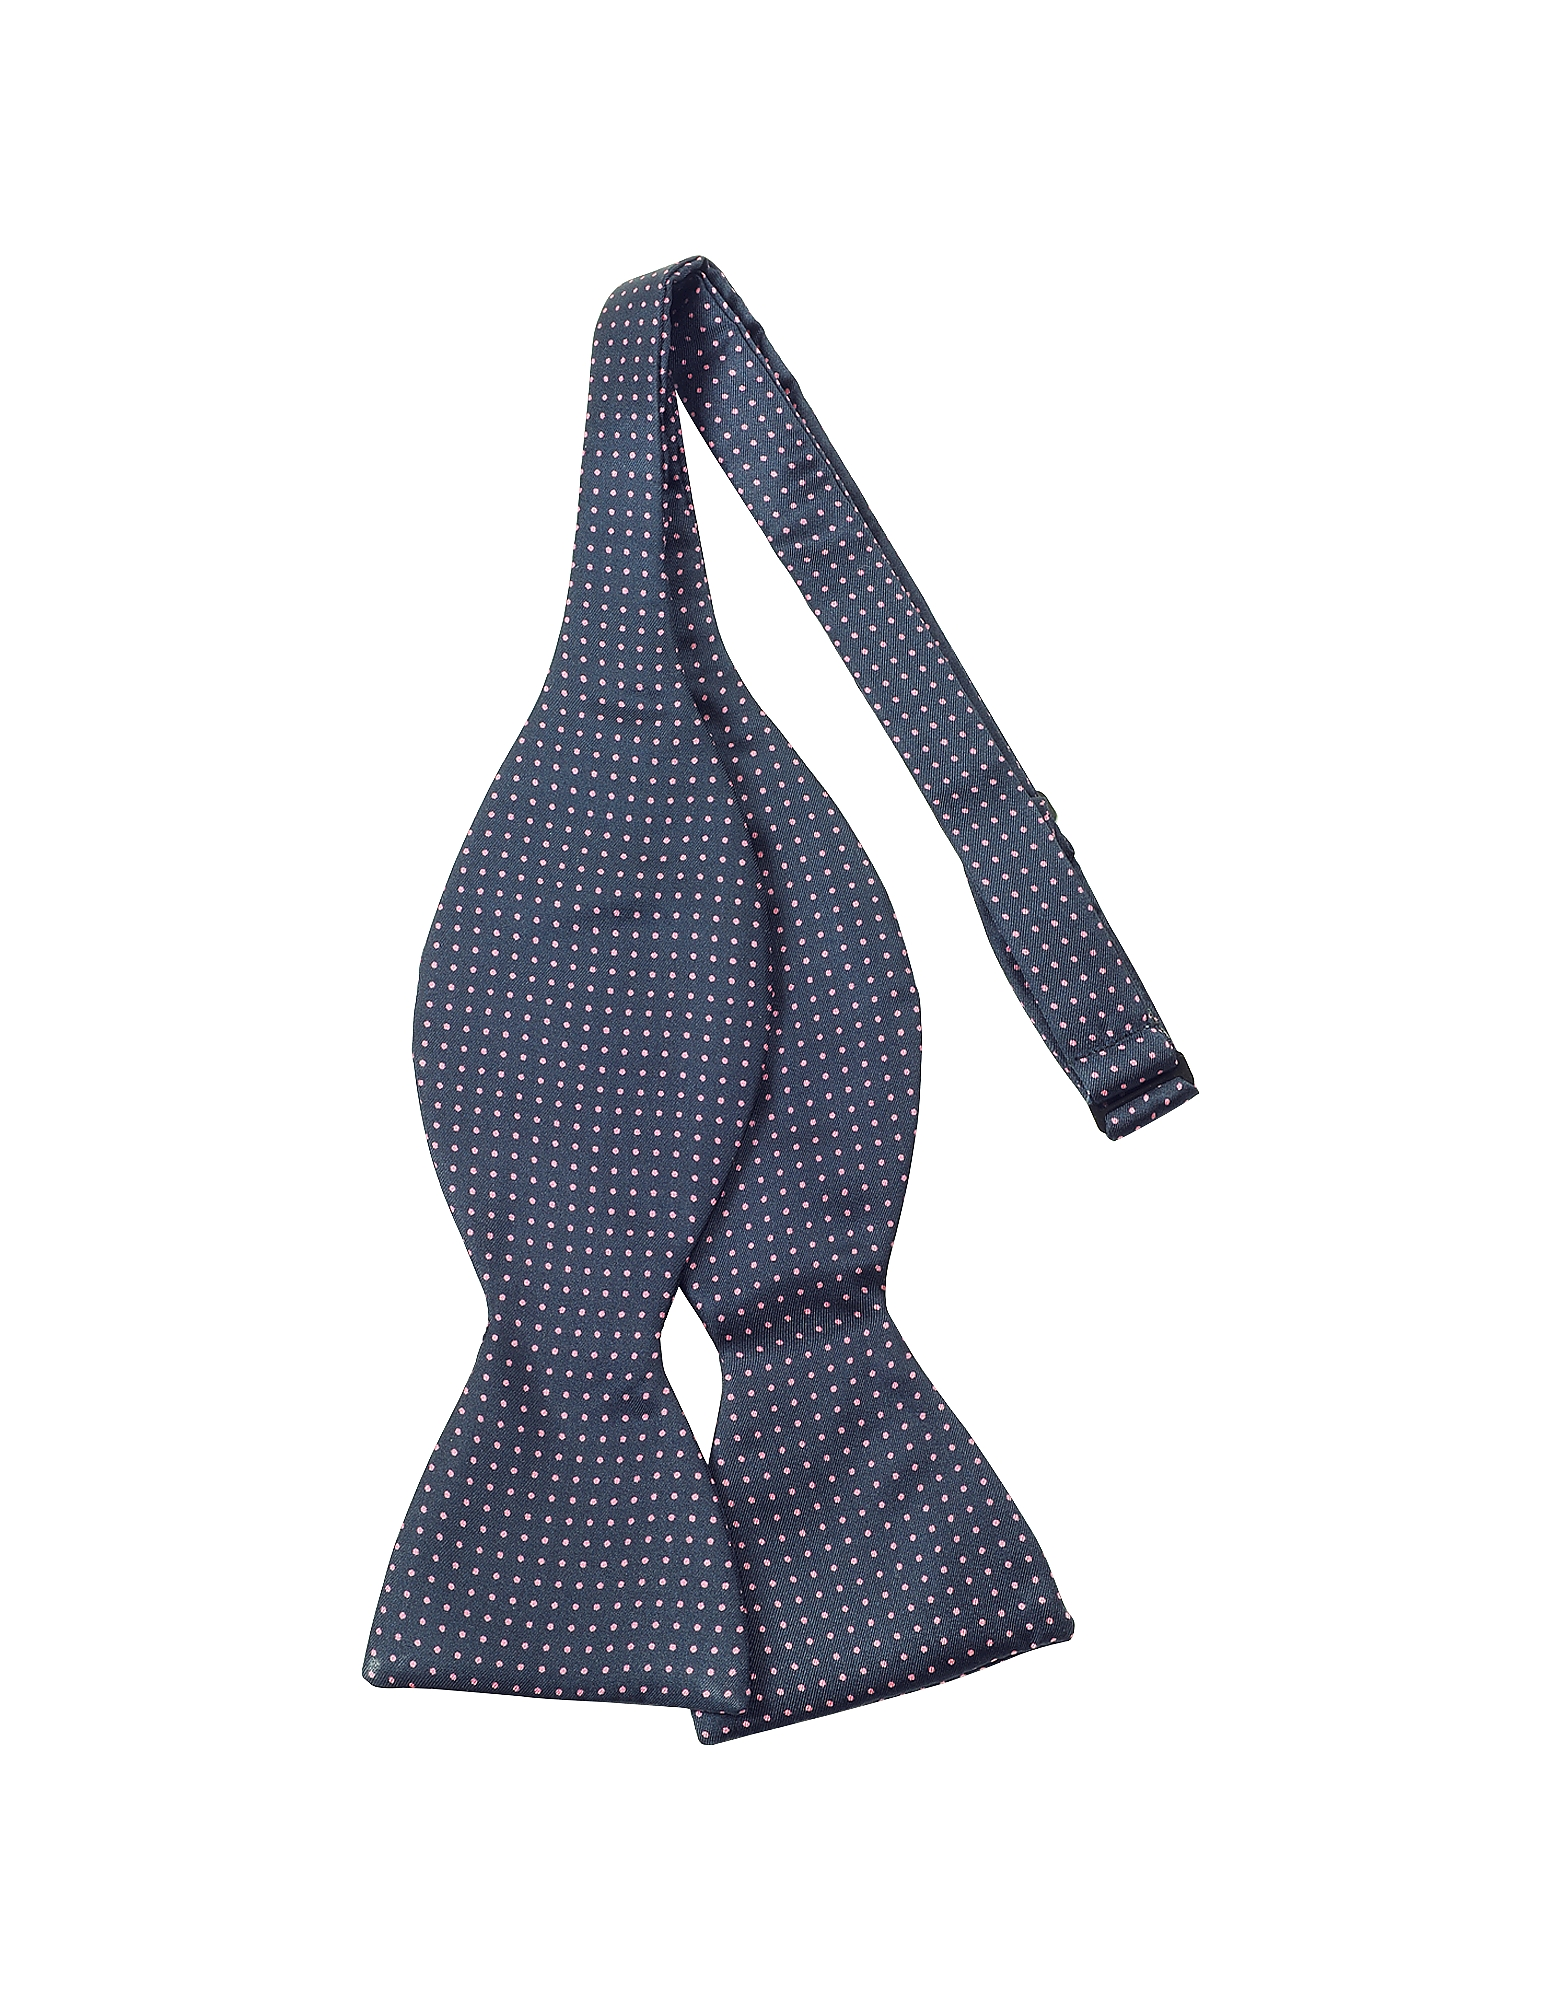 Forzieri Bowties and Cummerbunds, Small Polkadot Self-tie Silk Bowtie